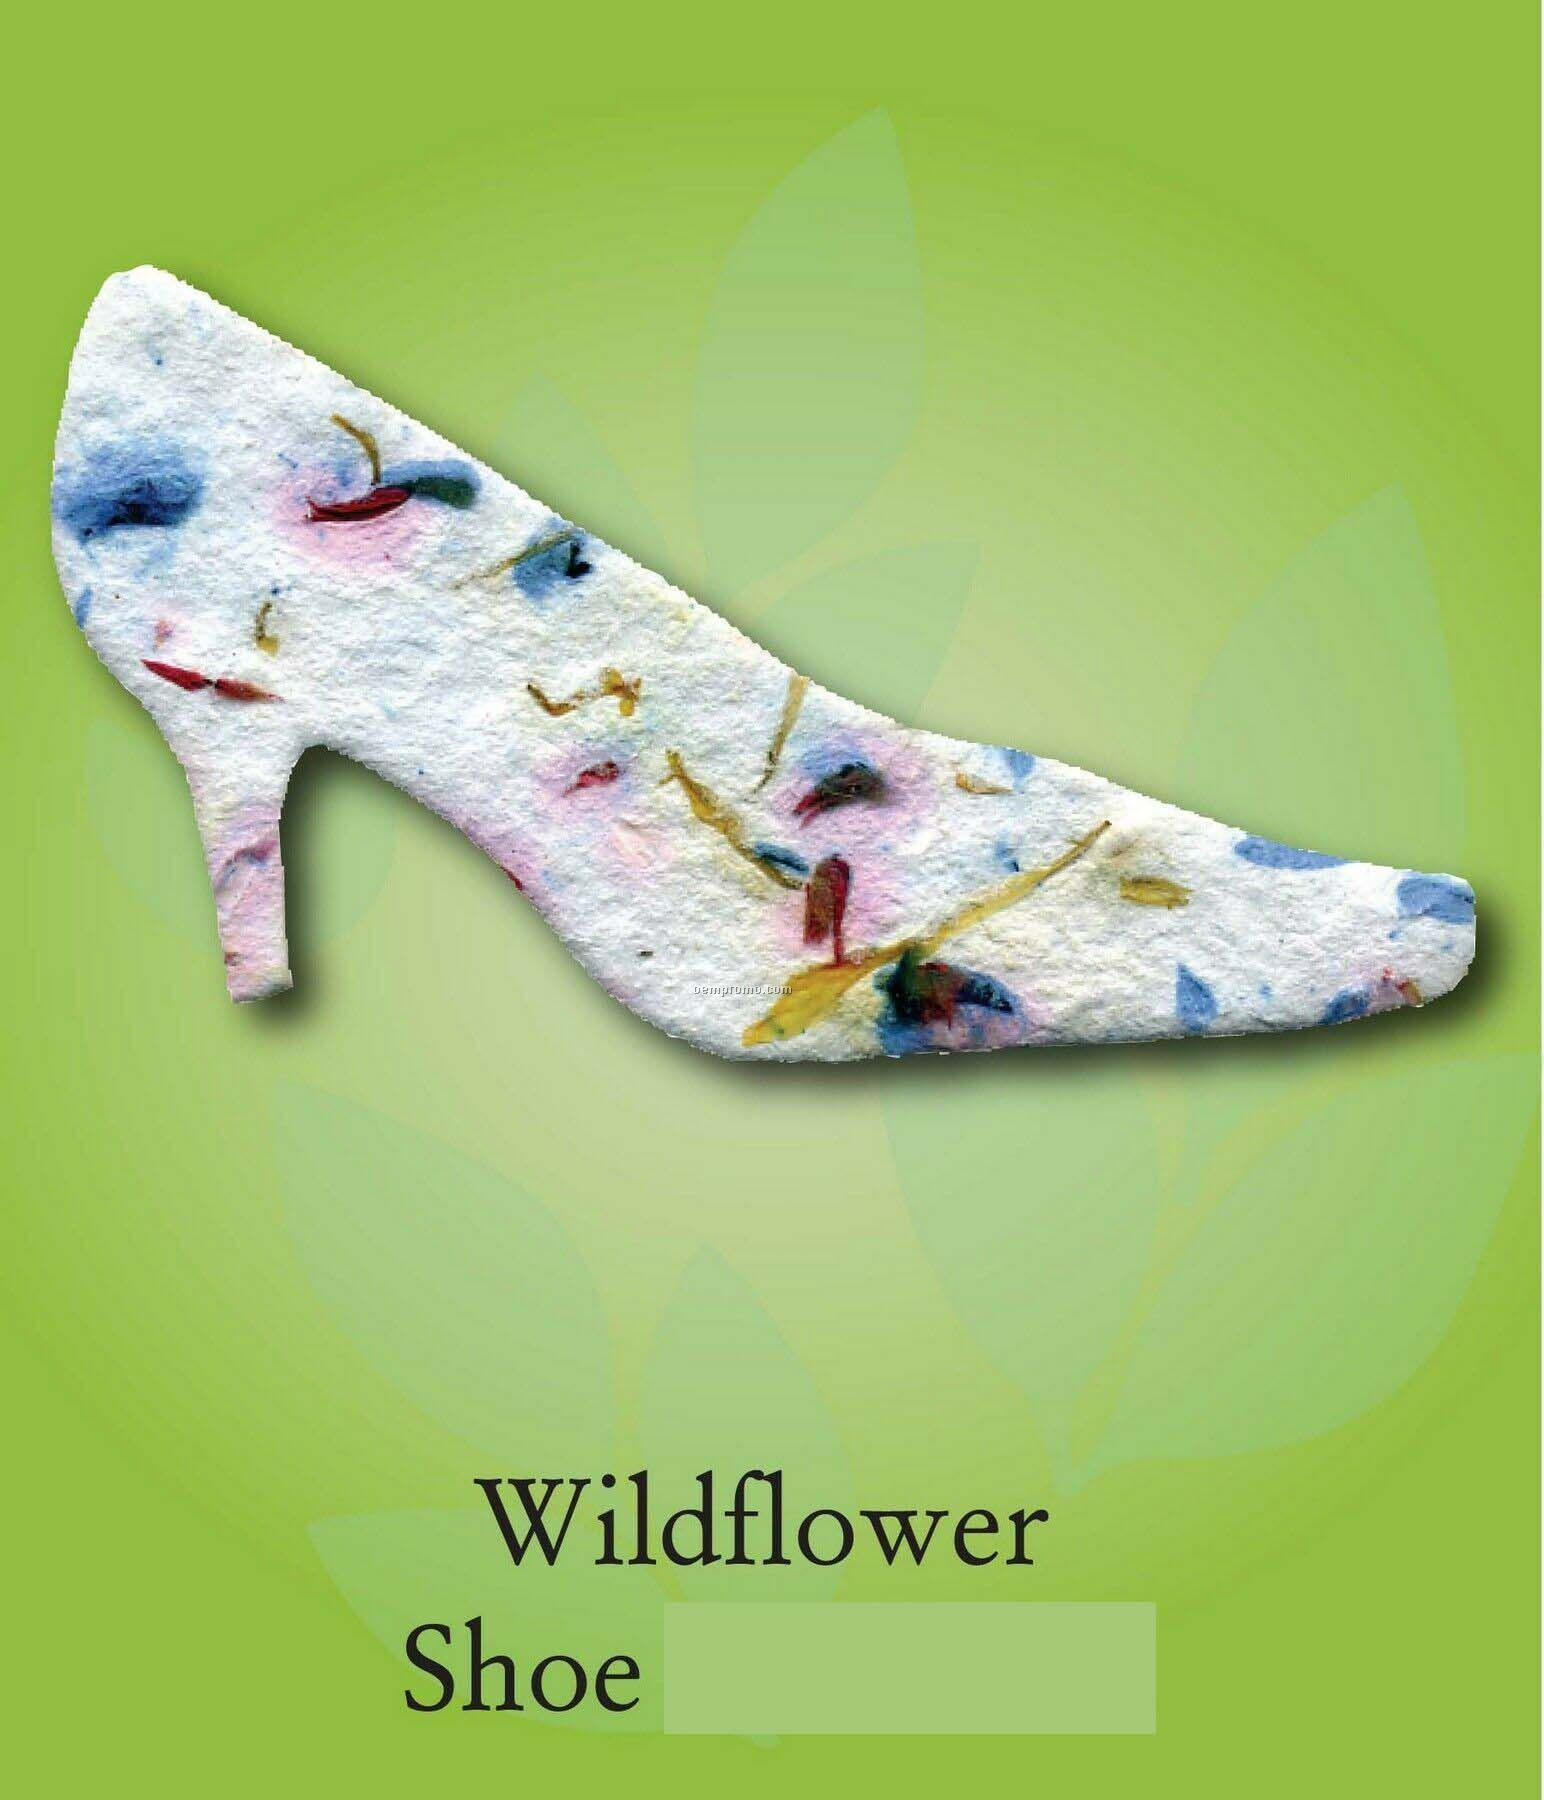 Wildflower Shoe Ornament With Embedded Seed